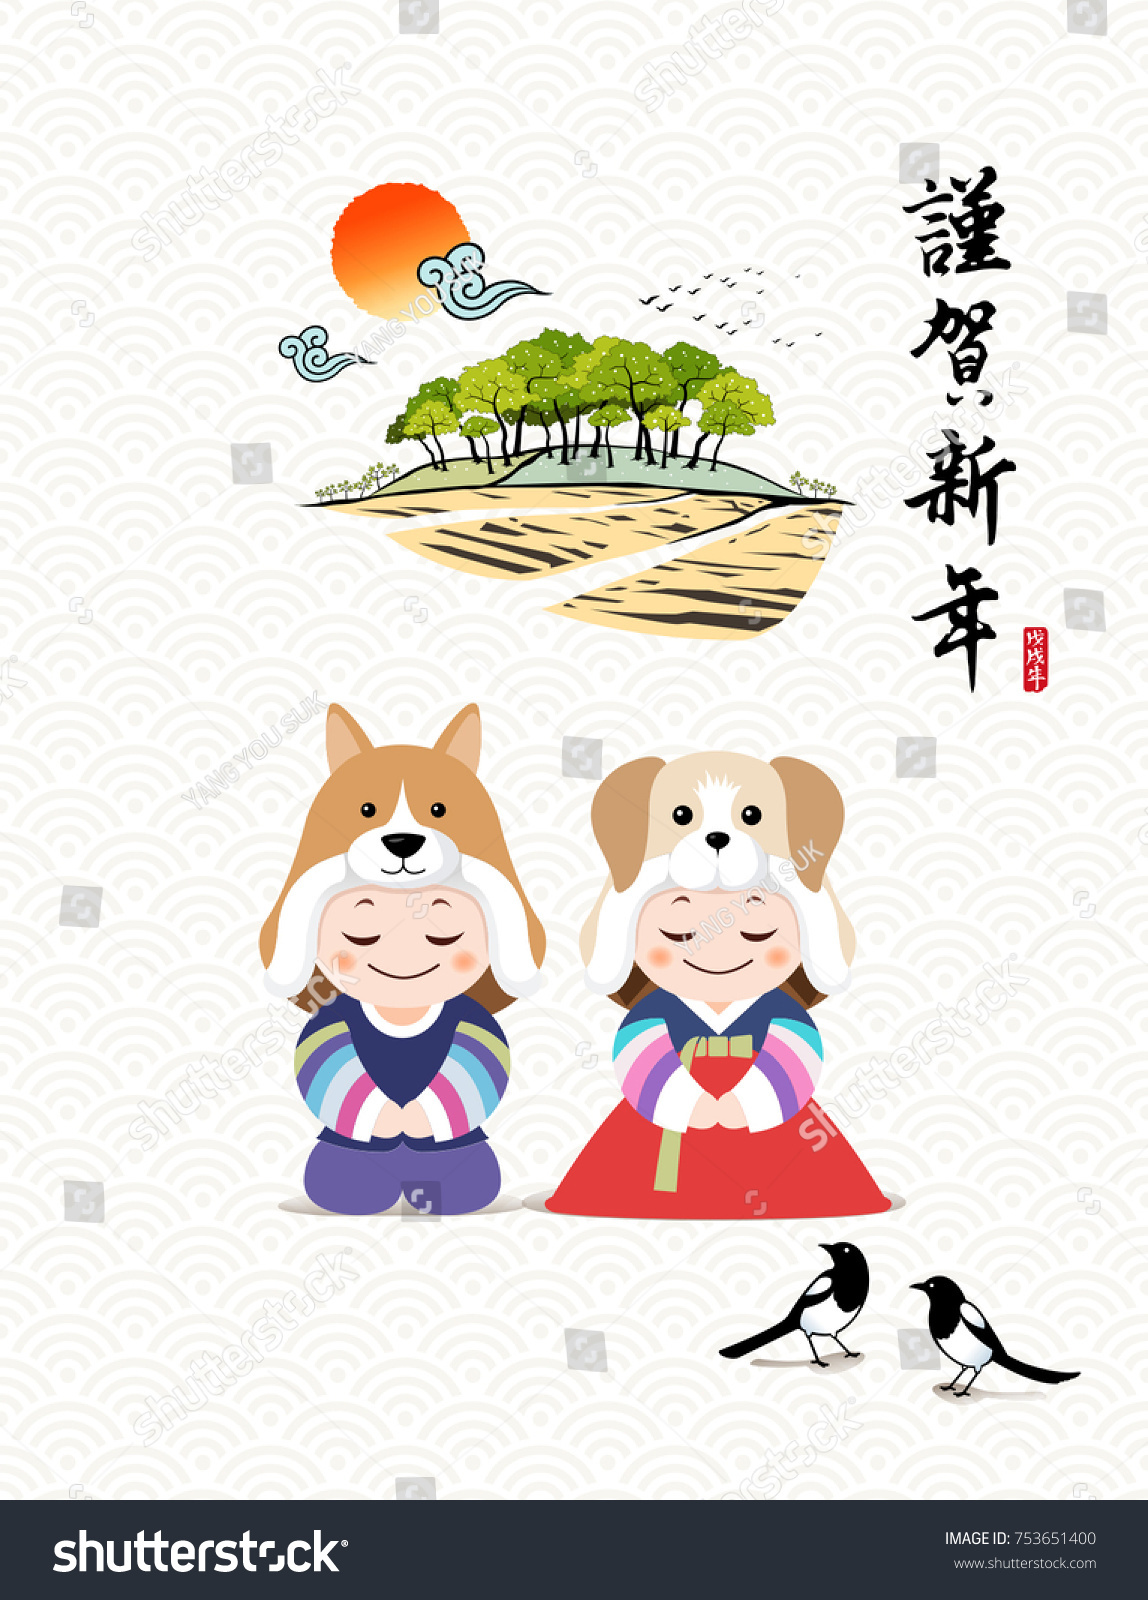 Happy new year translation chinese text stock photo photo vector happy new year translation of chinese text happy new year calligraphy and m4hsunfo